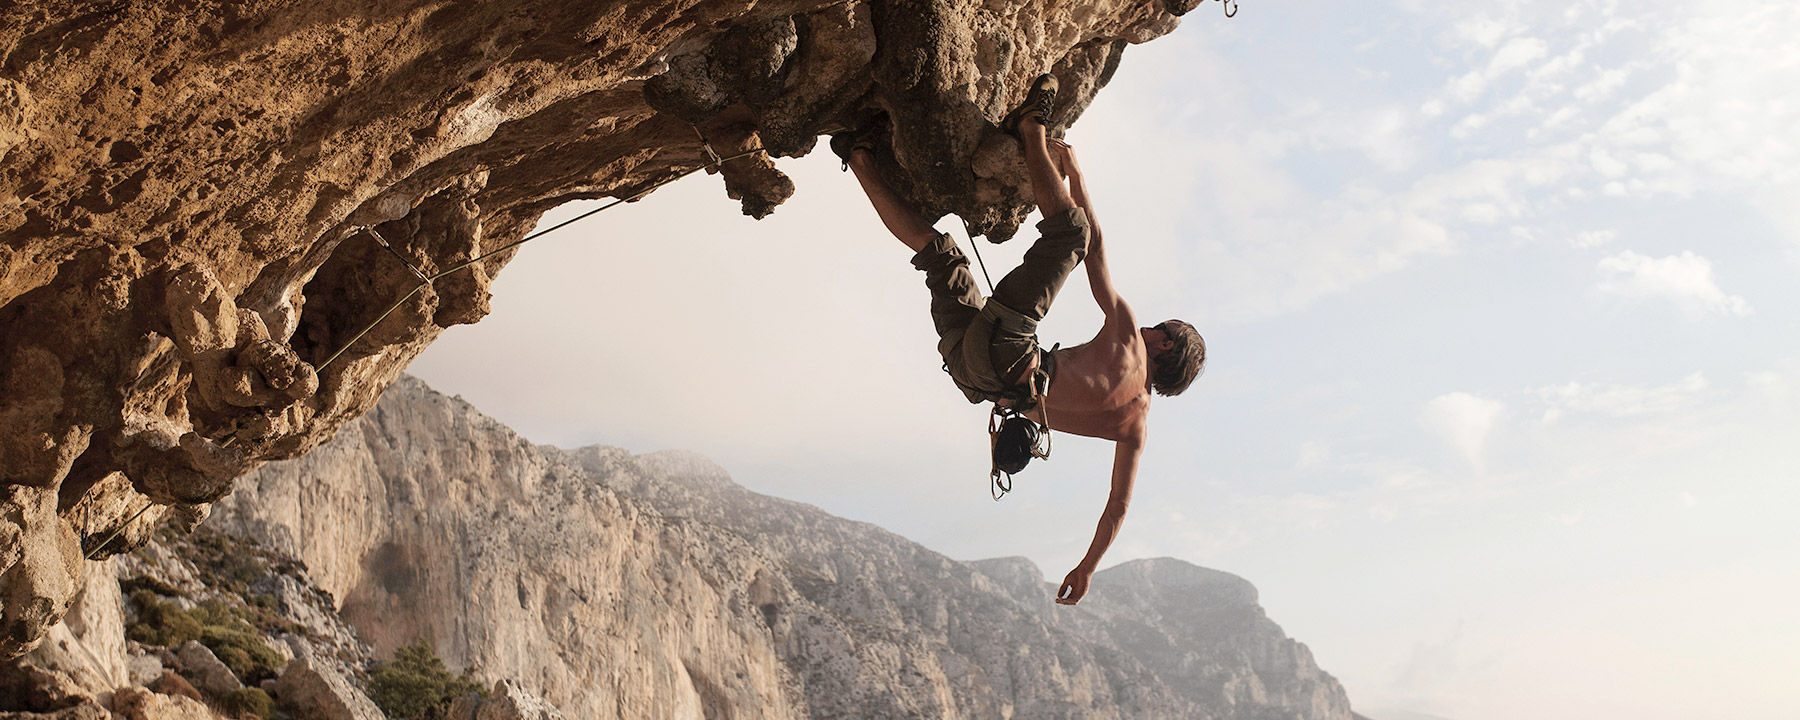 man challenging his limit by climbing rocks.